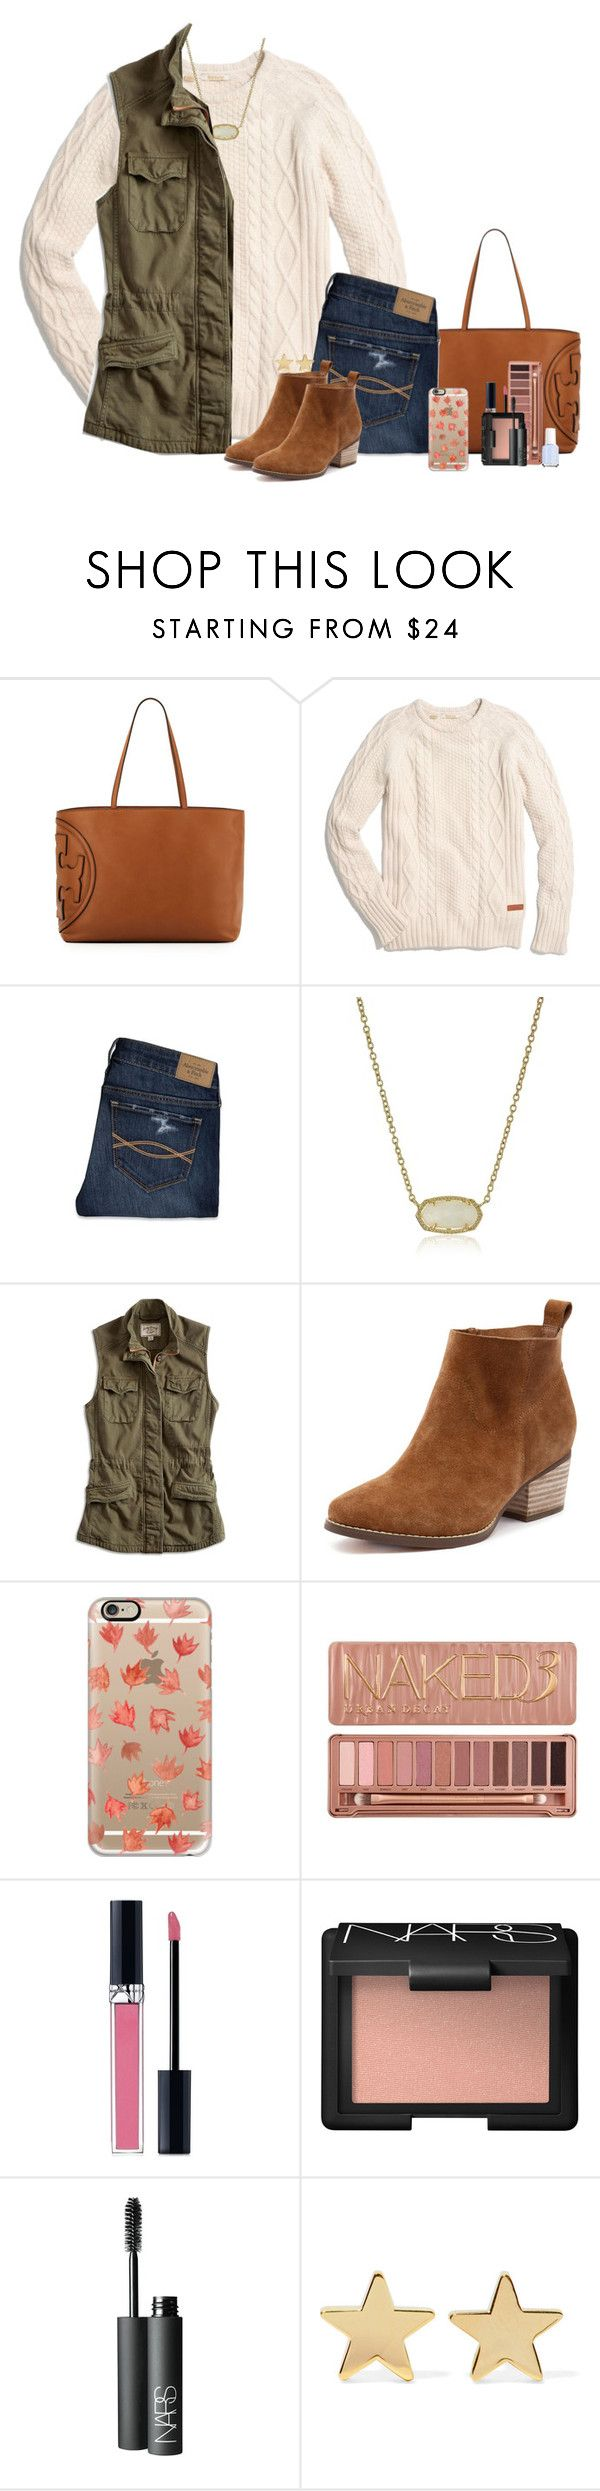 """Contest Entry!!"" by smiles-iv ❤ liked on Polyvore featuring Tory Burch, Madewell, Abercrombie & Fitch, Kendra Scott, Lucky Brand, Casetify, Urban Decay, Christian Dior, NARS Cosmetics and Jennifer Meyer Jewelry"